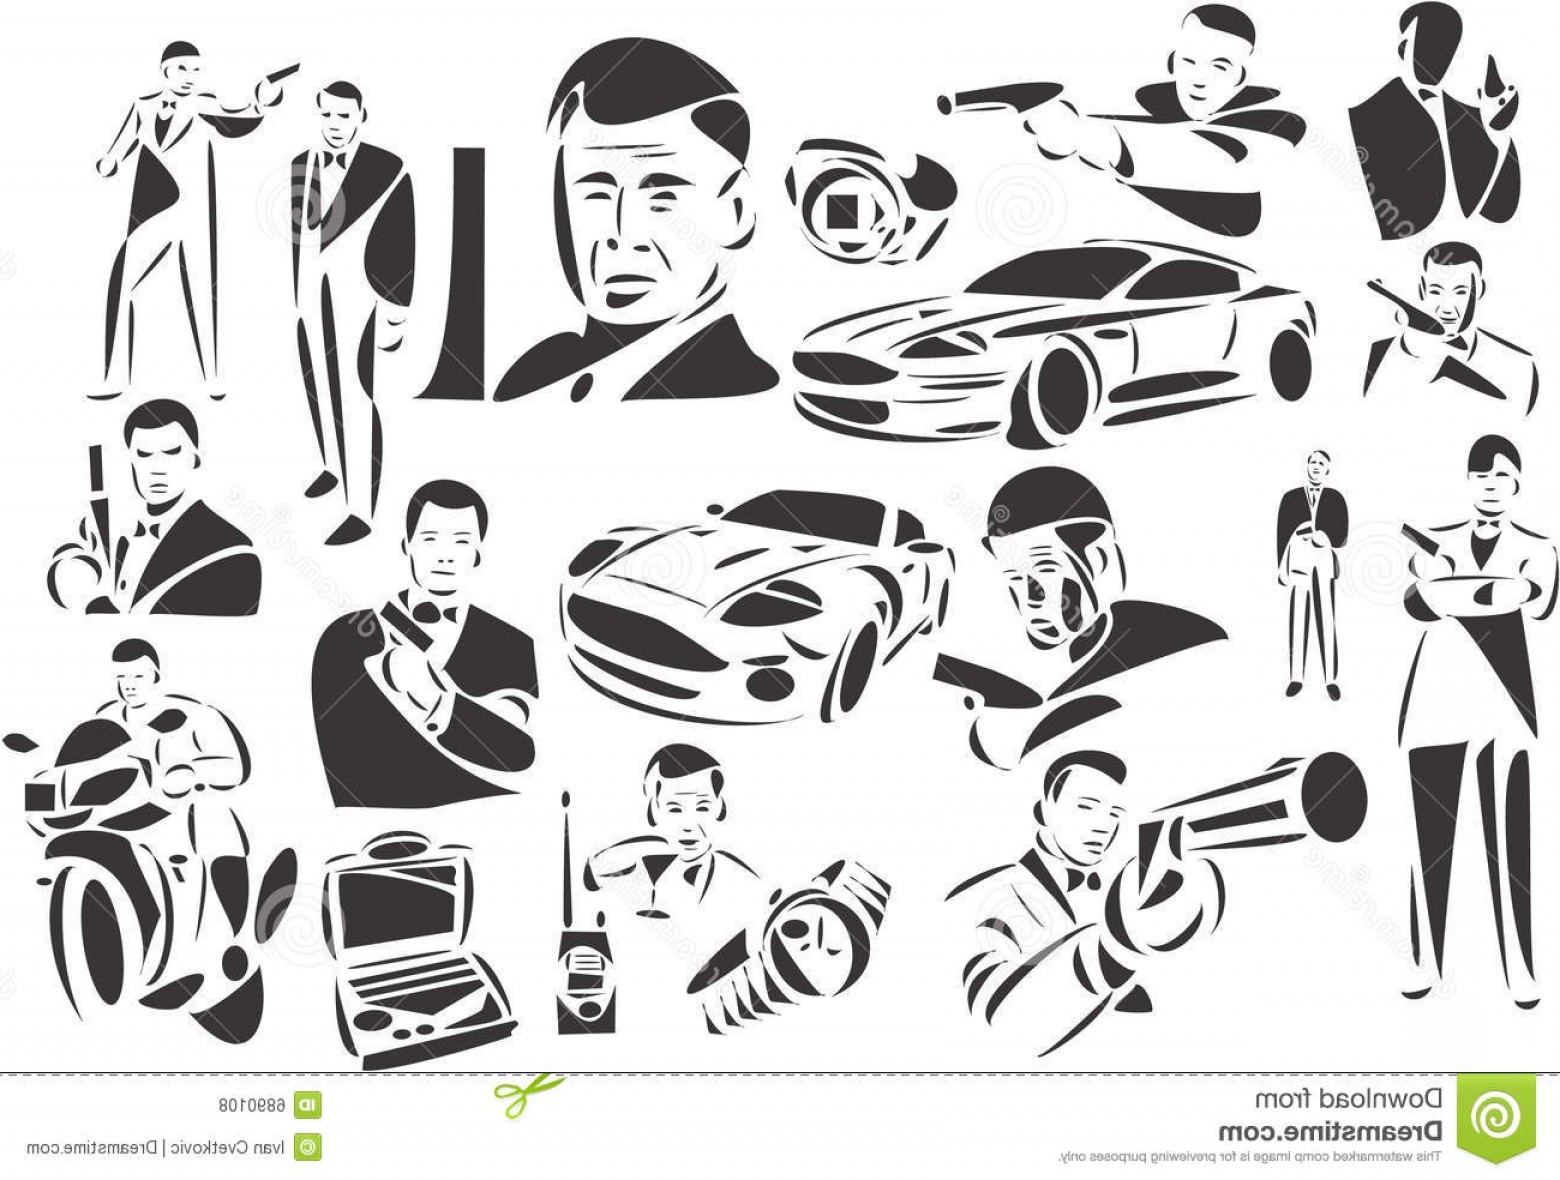 James Bond Silhouette Vector: Royalty Free Stock Photos James Bond Image